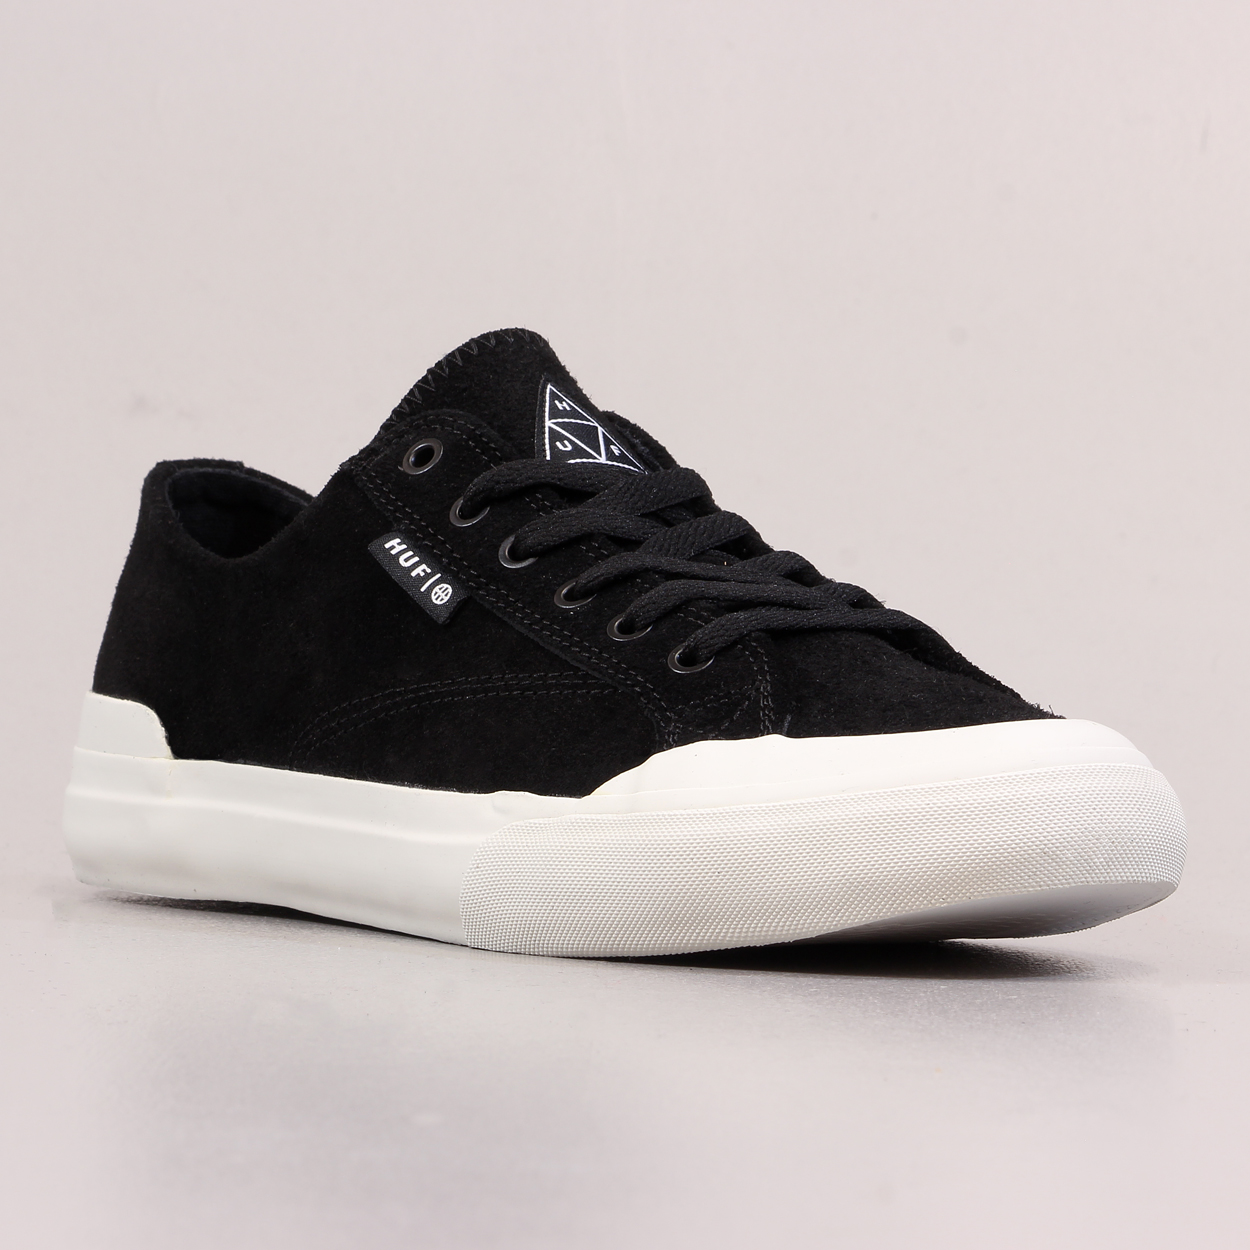 2d38dc2d3141a A vintage inspired shoe silhouette with minimal padding and a new vulc sole  from Huf